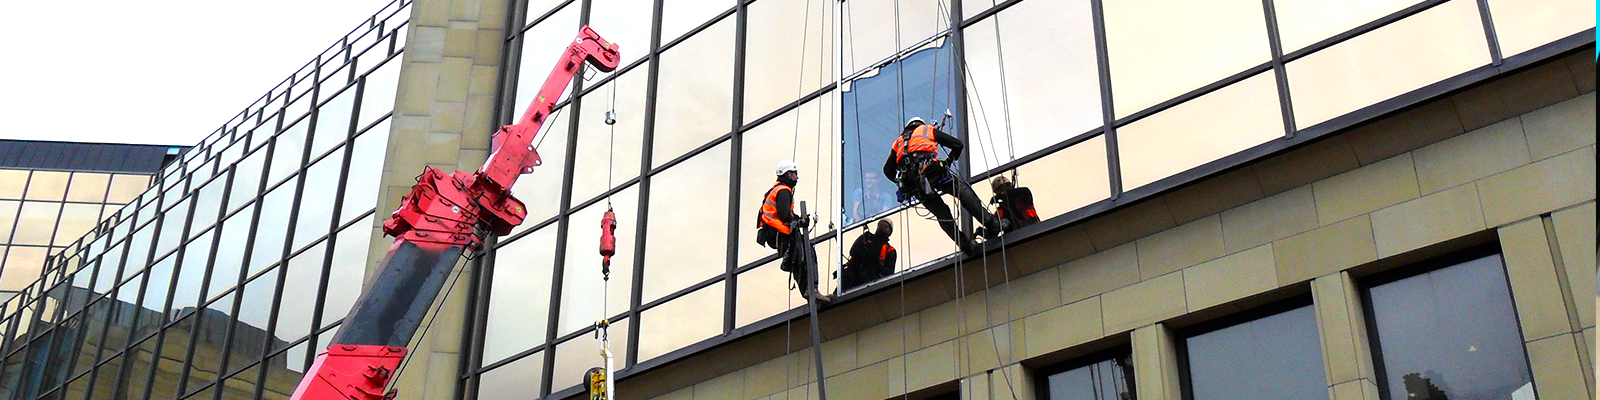 Commercial Glazing Services By Vps Group